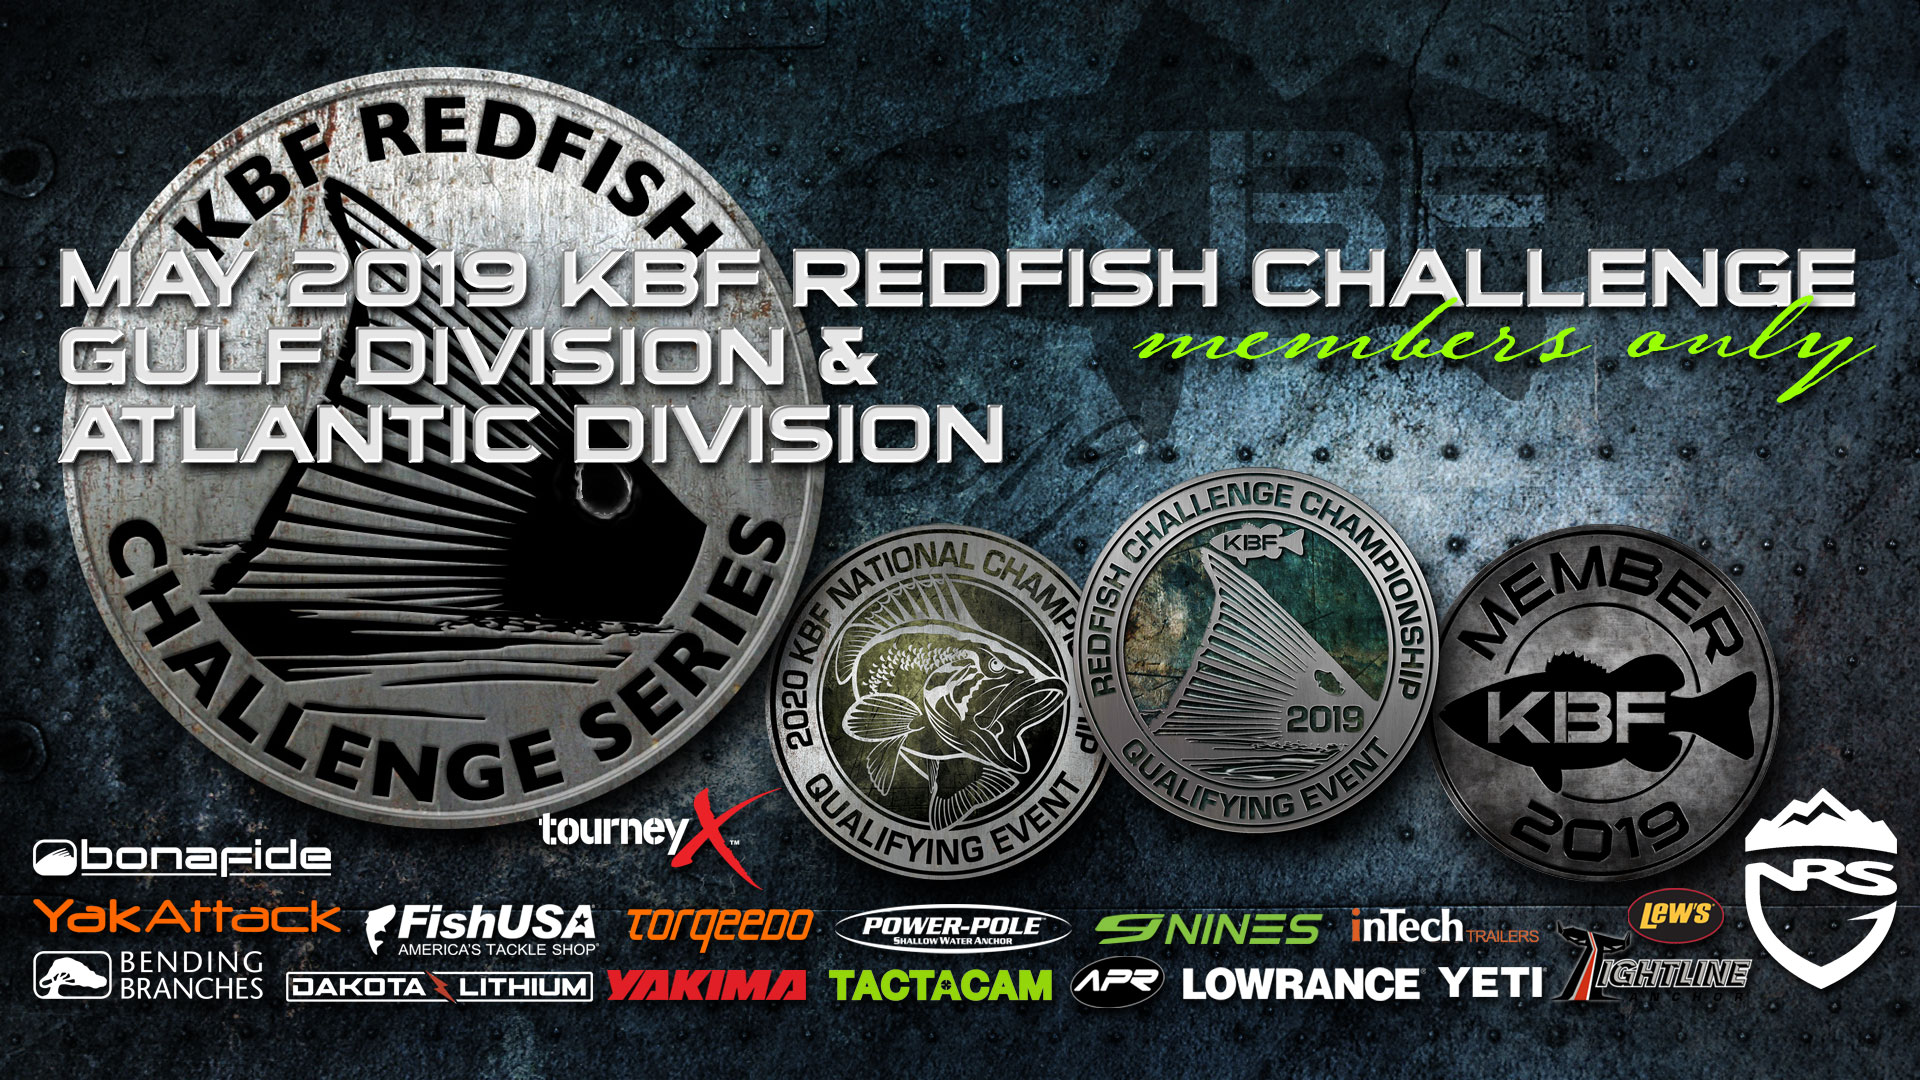 May 2019 KBF Redfish Challenge